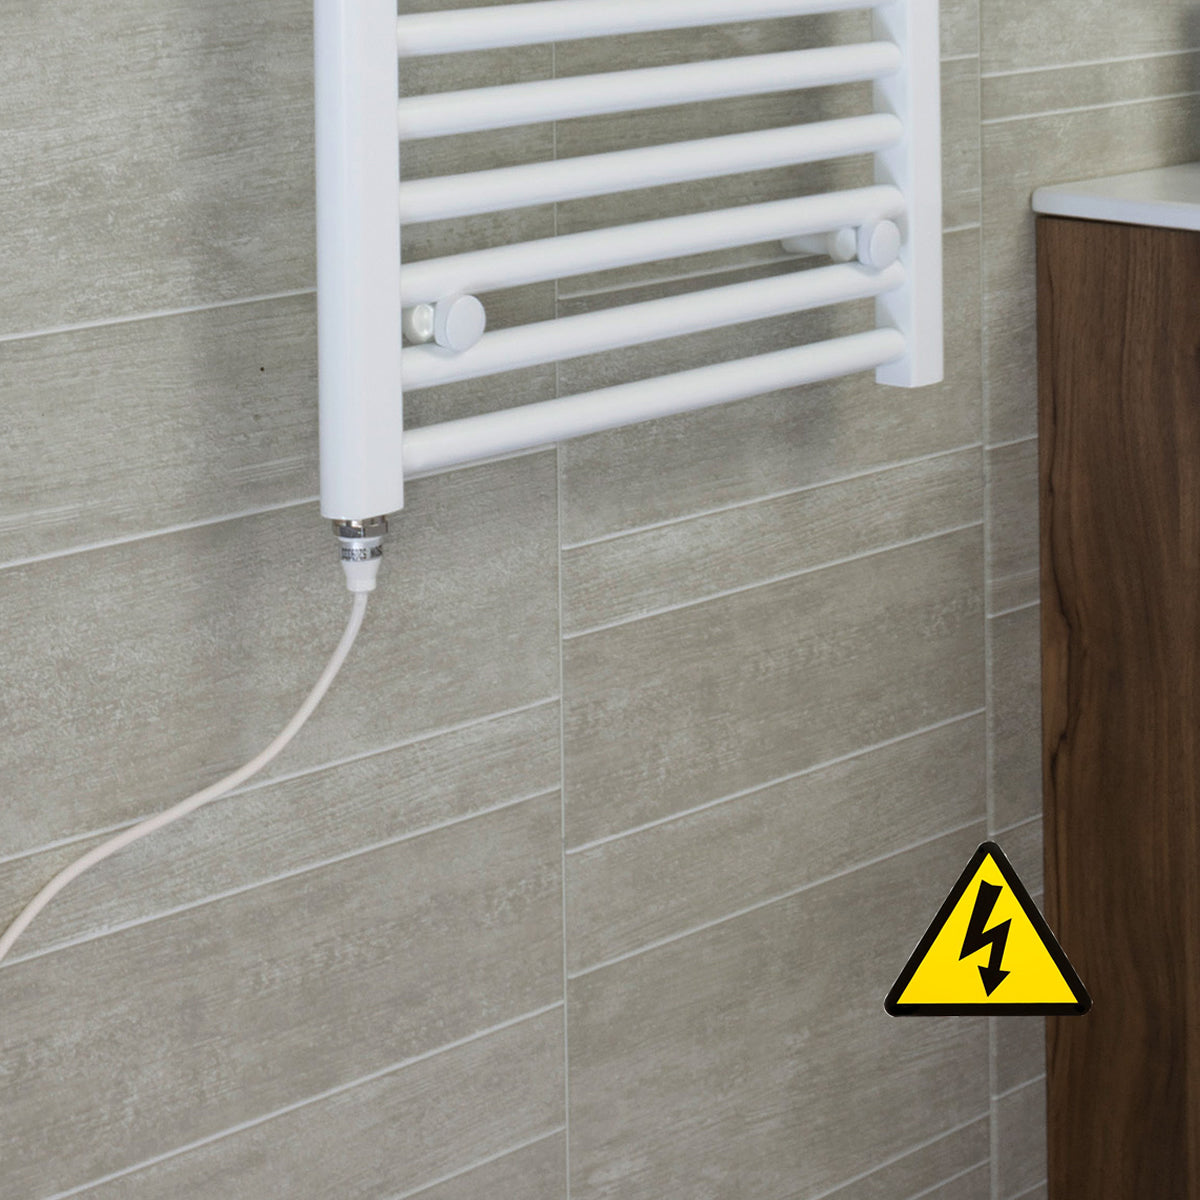 900 mm High 450 mm Wide Heated Curved Towel Rail Radiator White Central heating or Electric